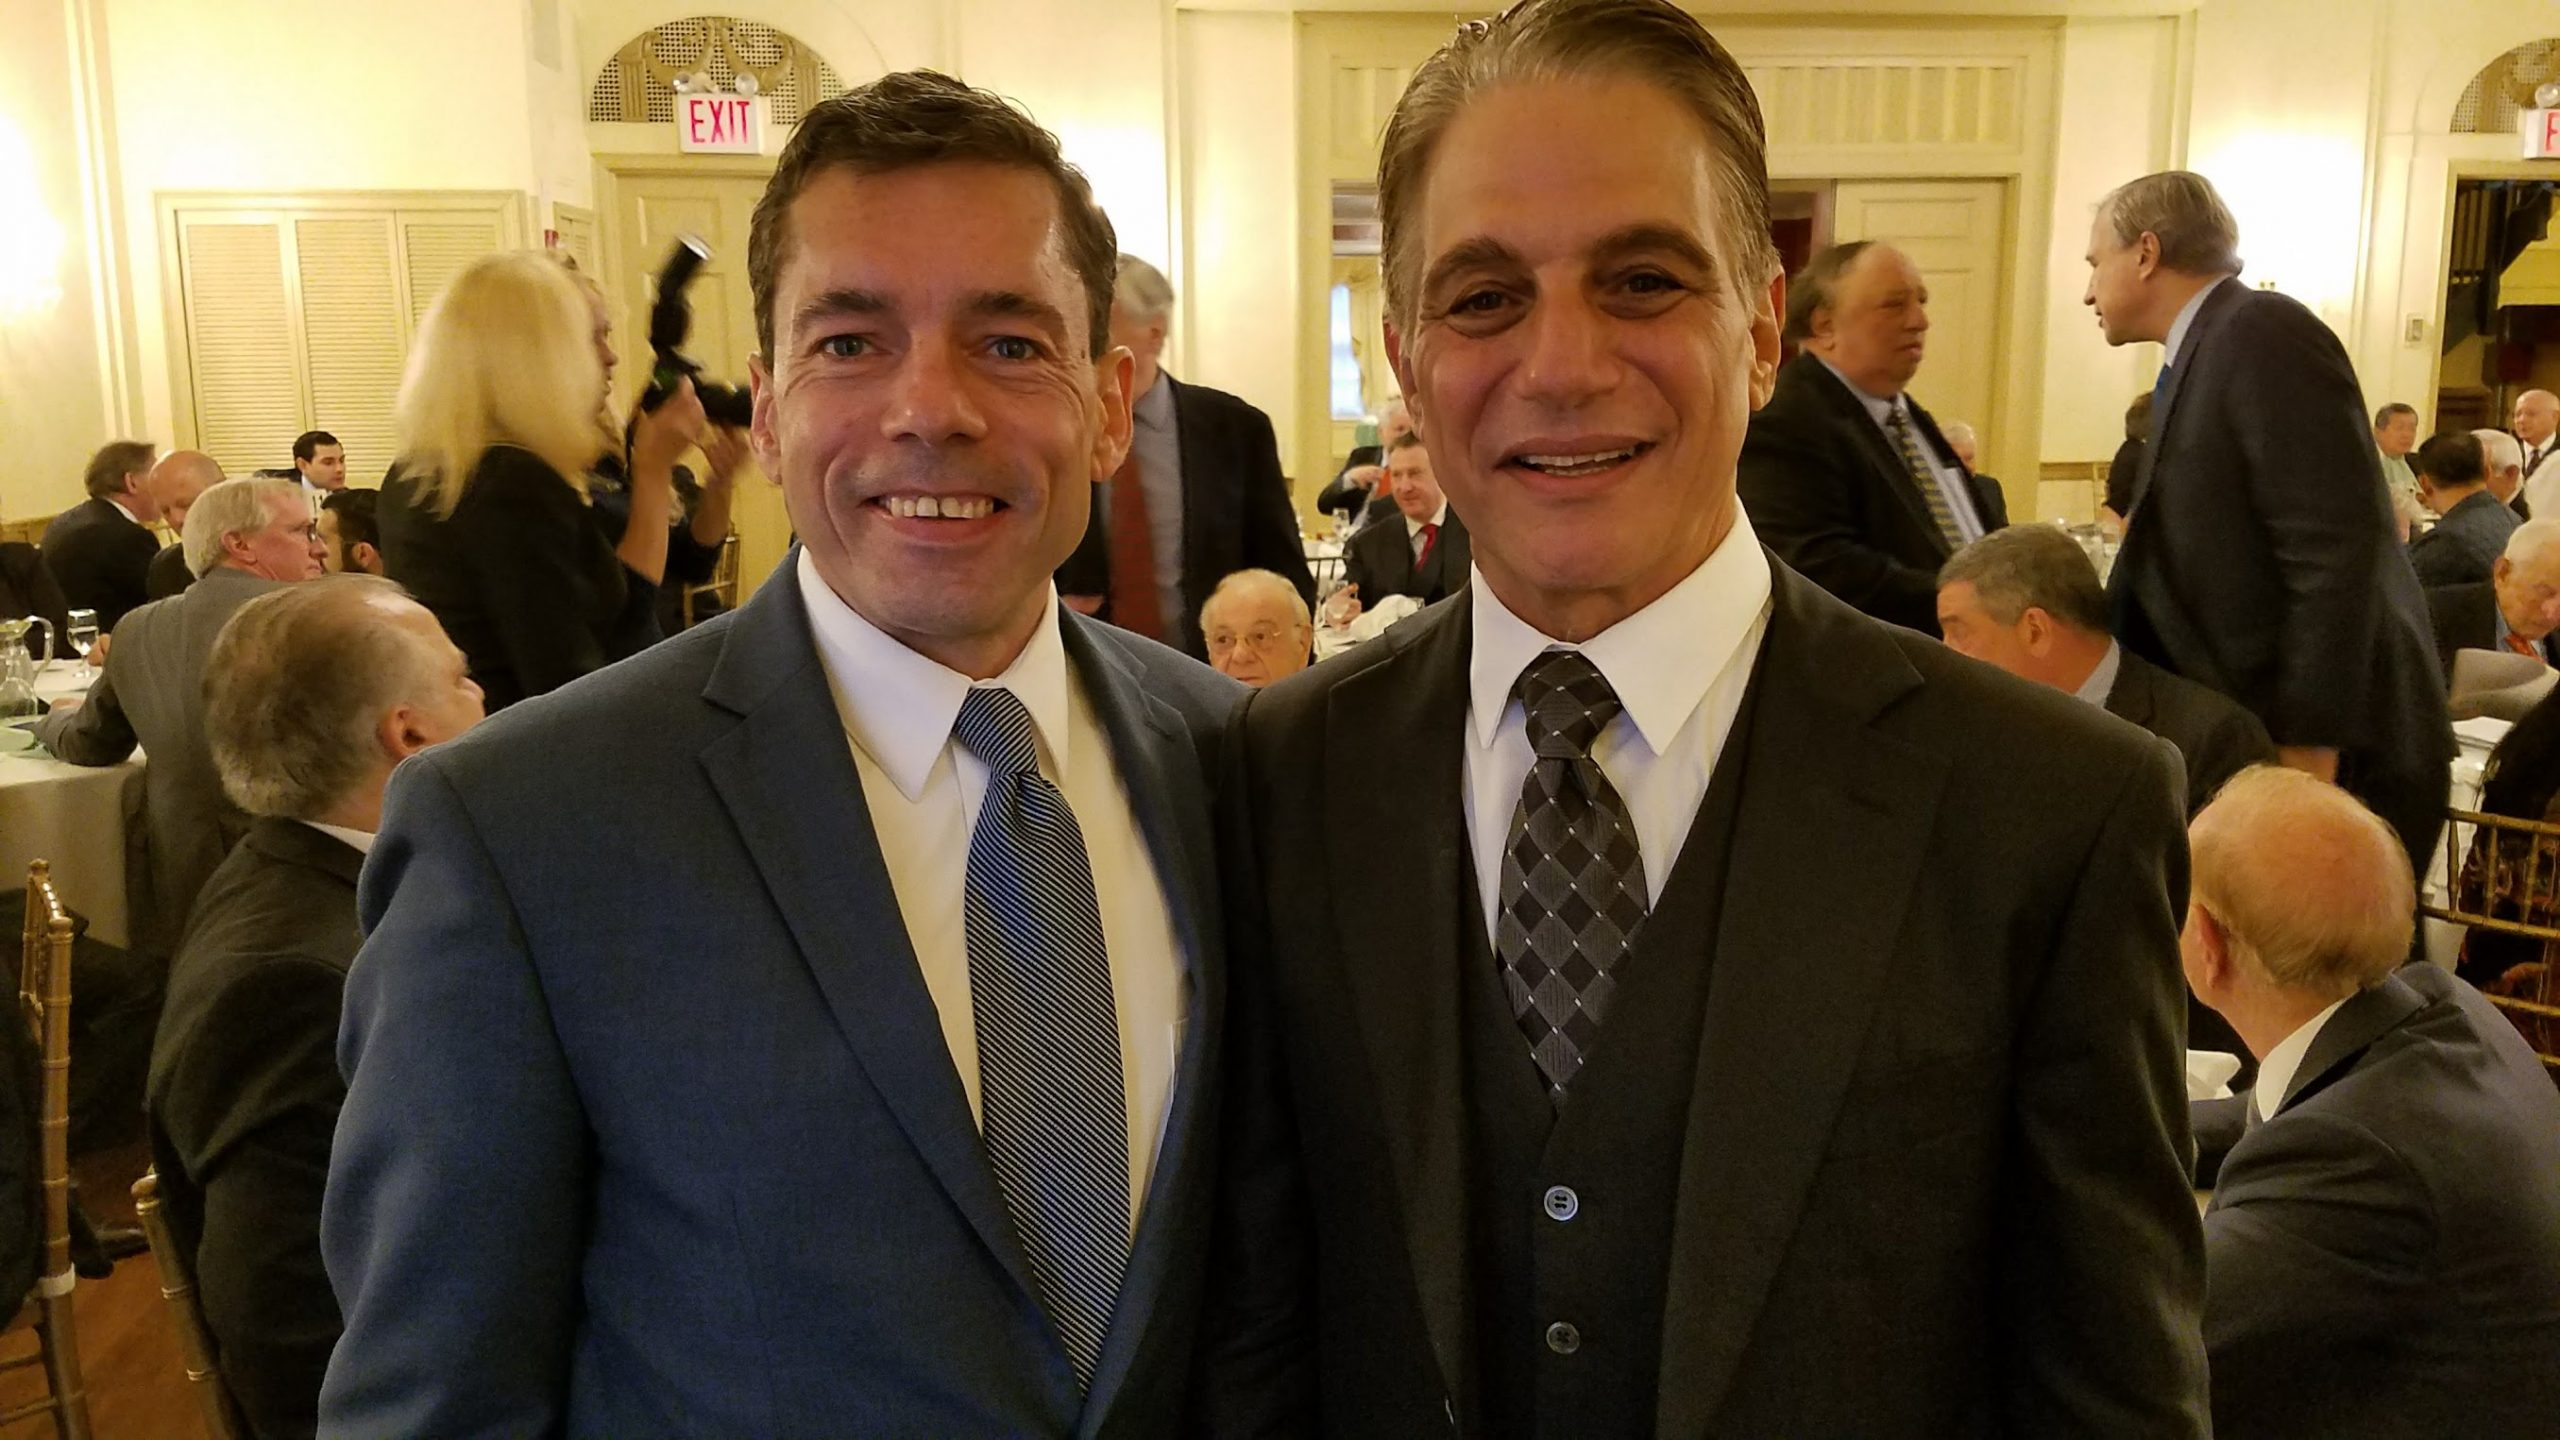 Tony Danza and Mark Derho at NYC PAL Event (2017)